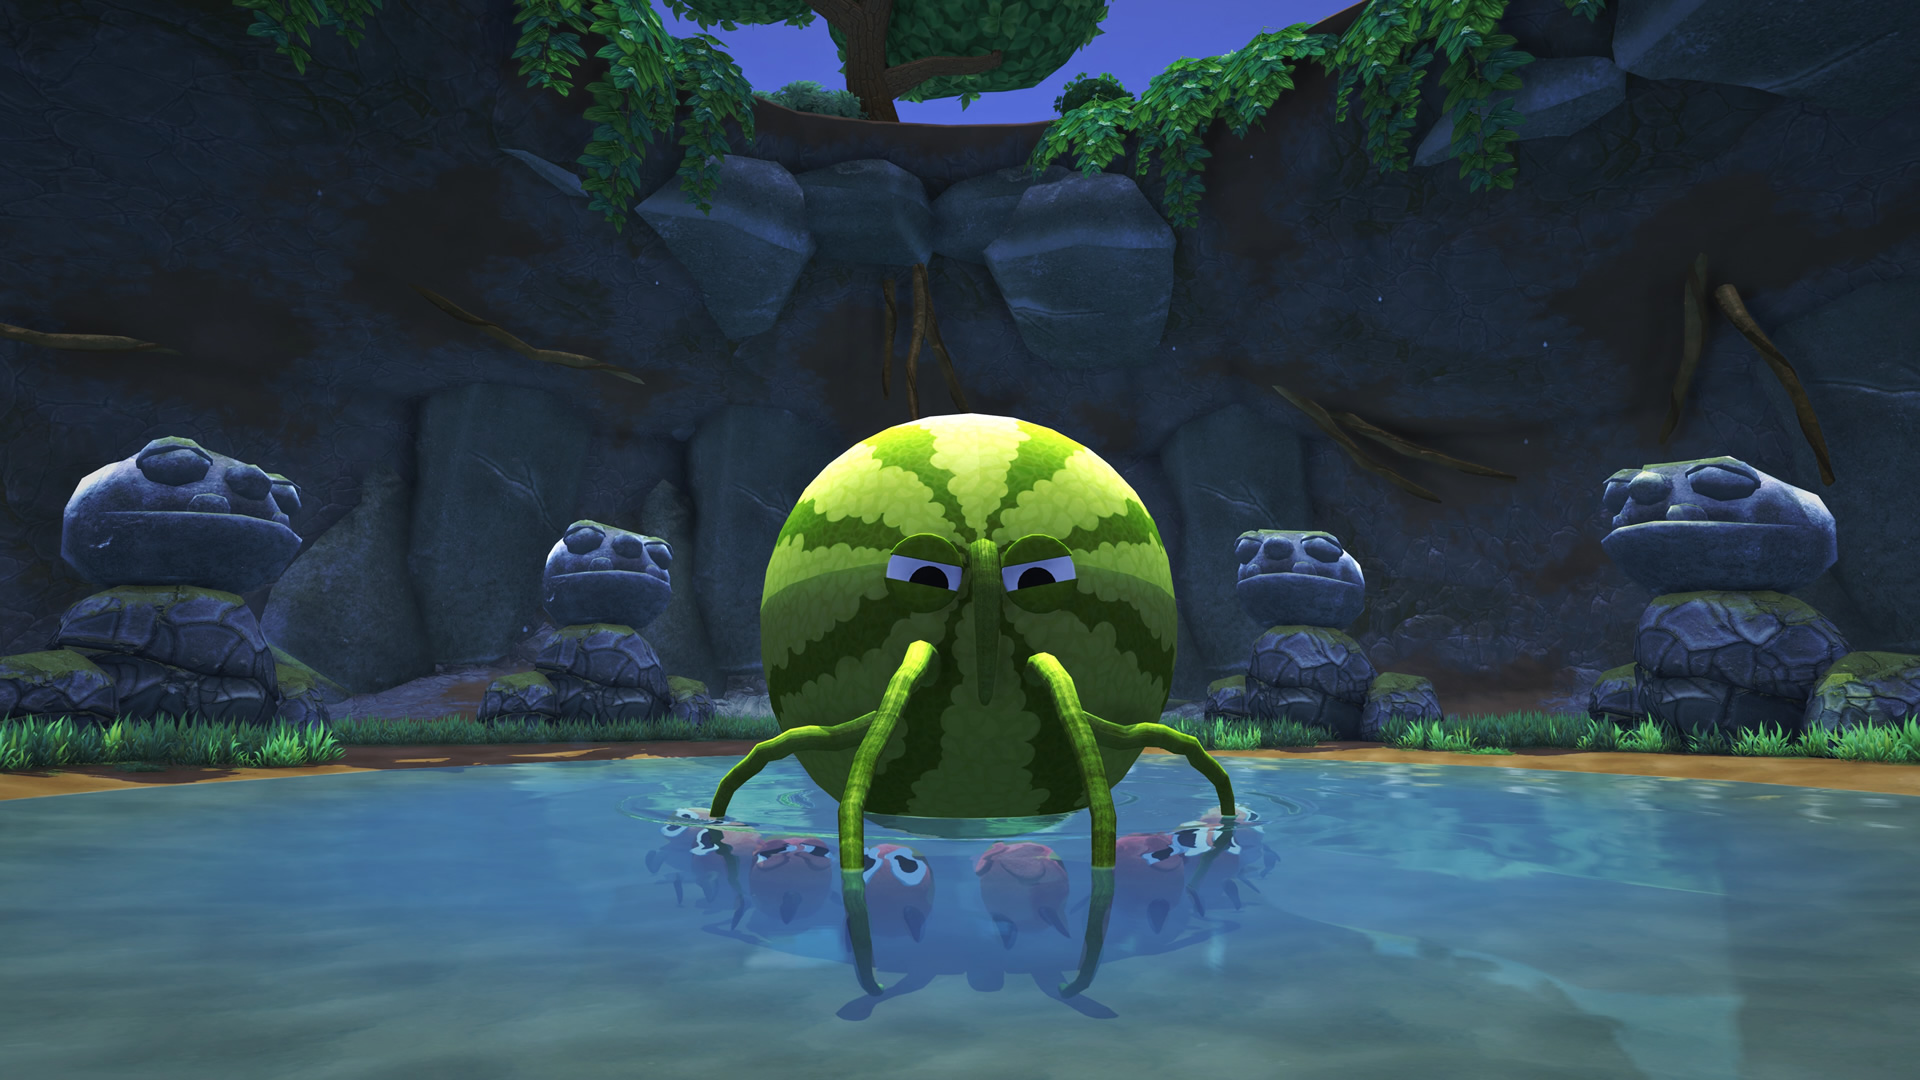 A screenshot of a bugsnax creature, a watermelon with whiskery appendages floating in a pond. It surely has an adorable pun name of some kind